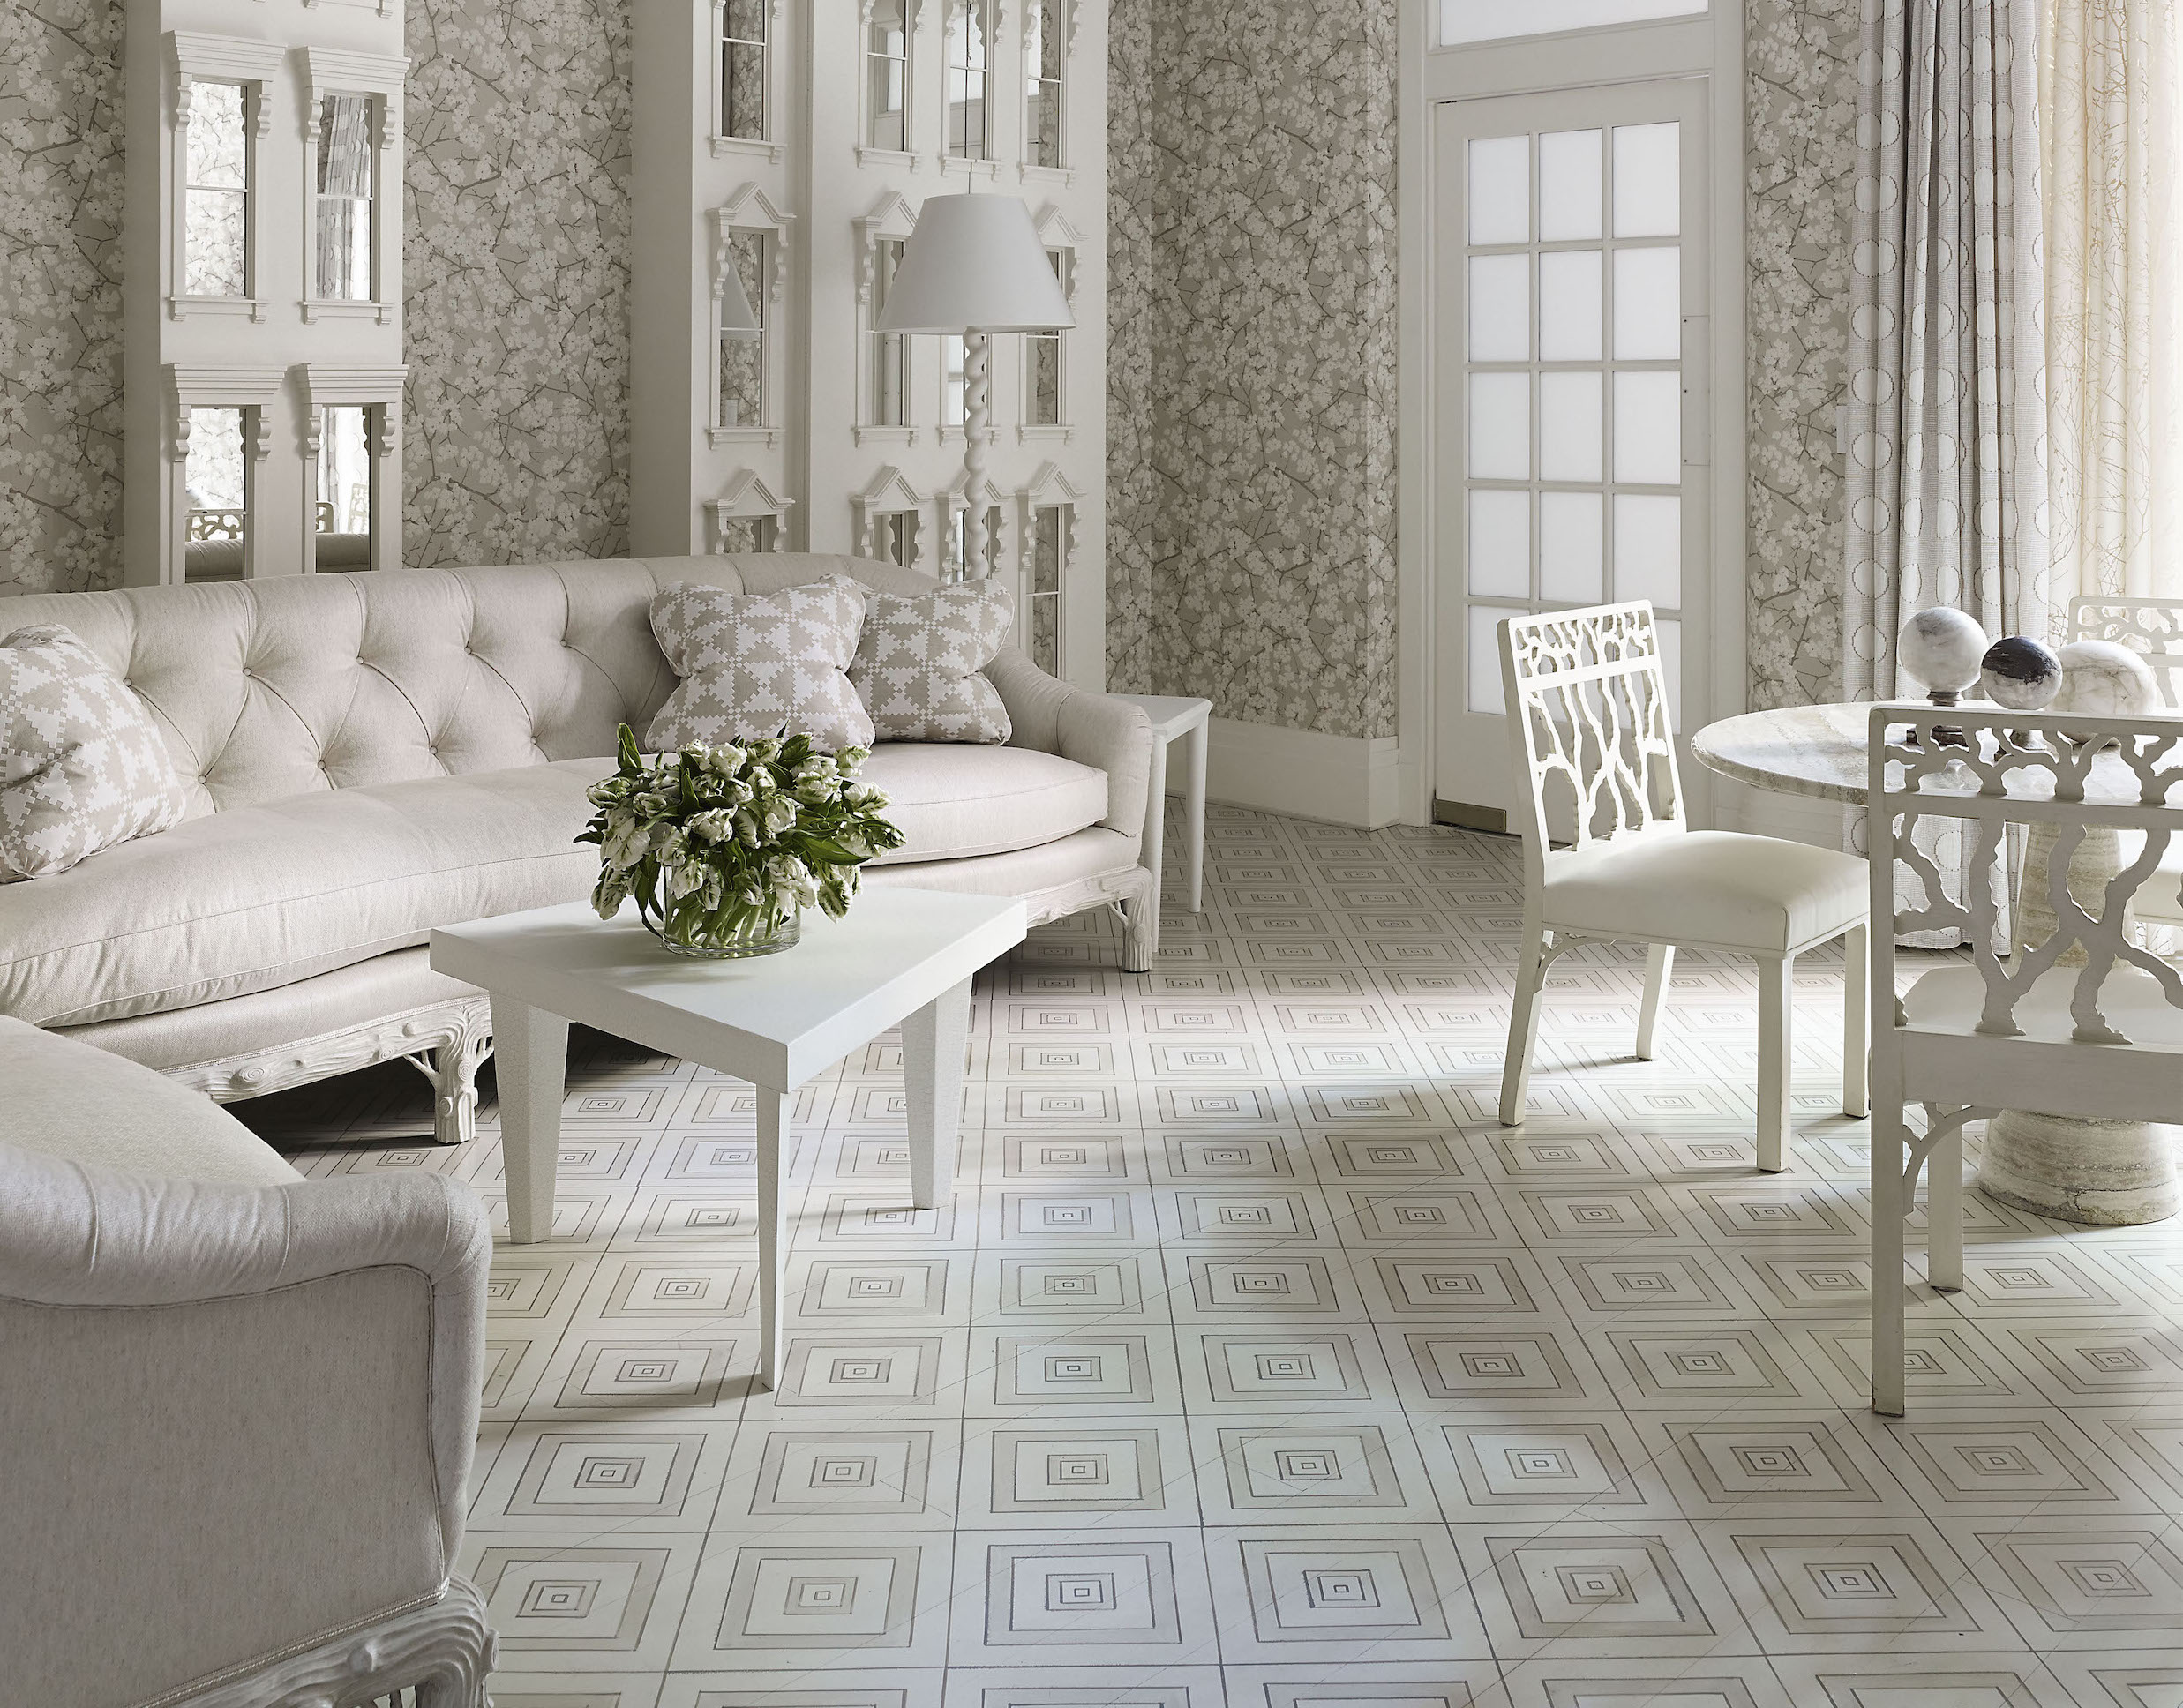 20 White Living Room Furniture Ideas White Chairs and Couches